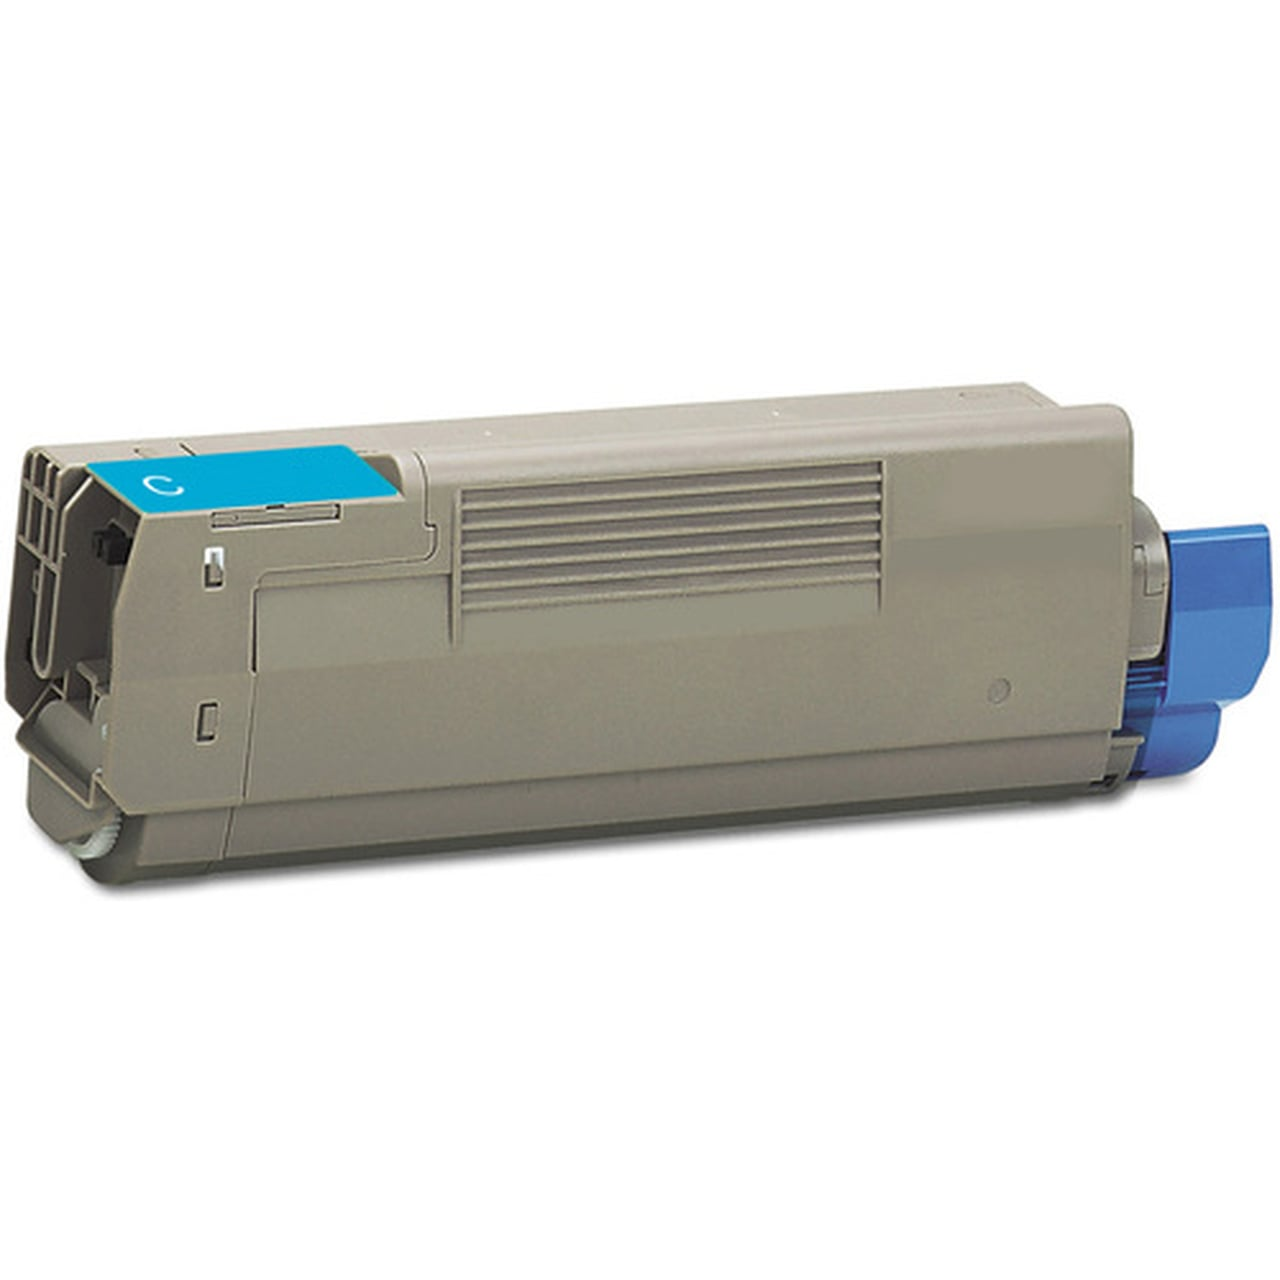 44315303 Toner Cartridge - Okidata Remanufactured (Cyan)